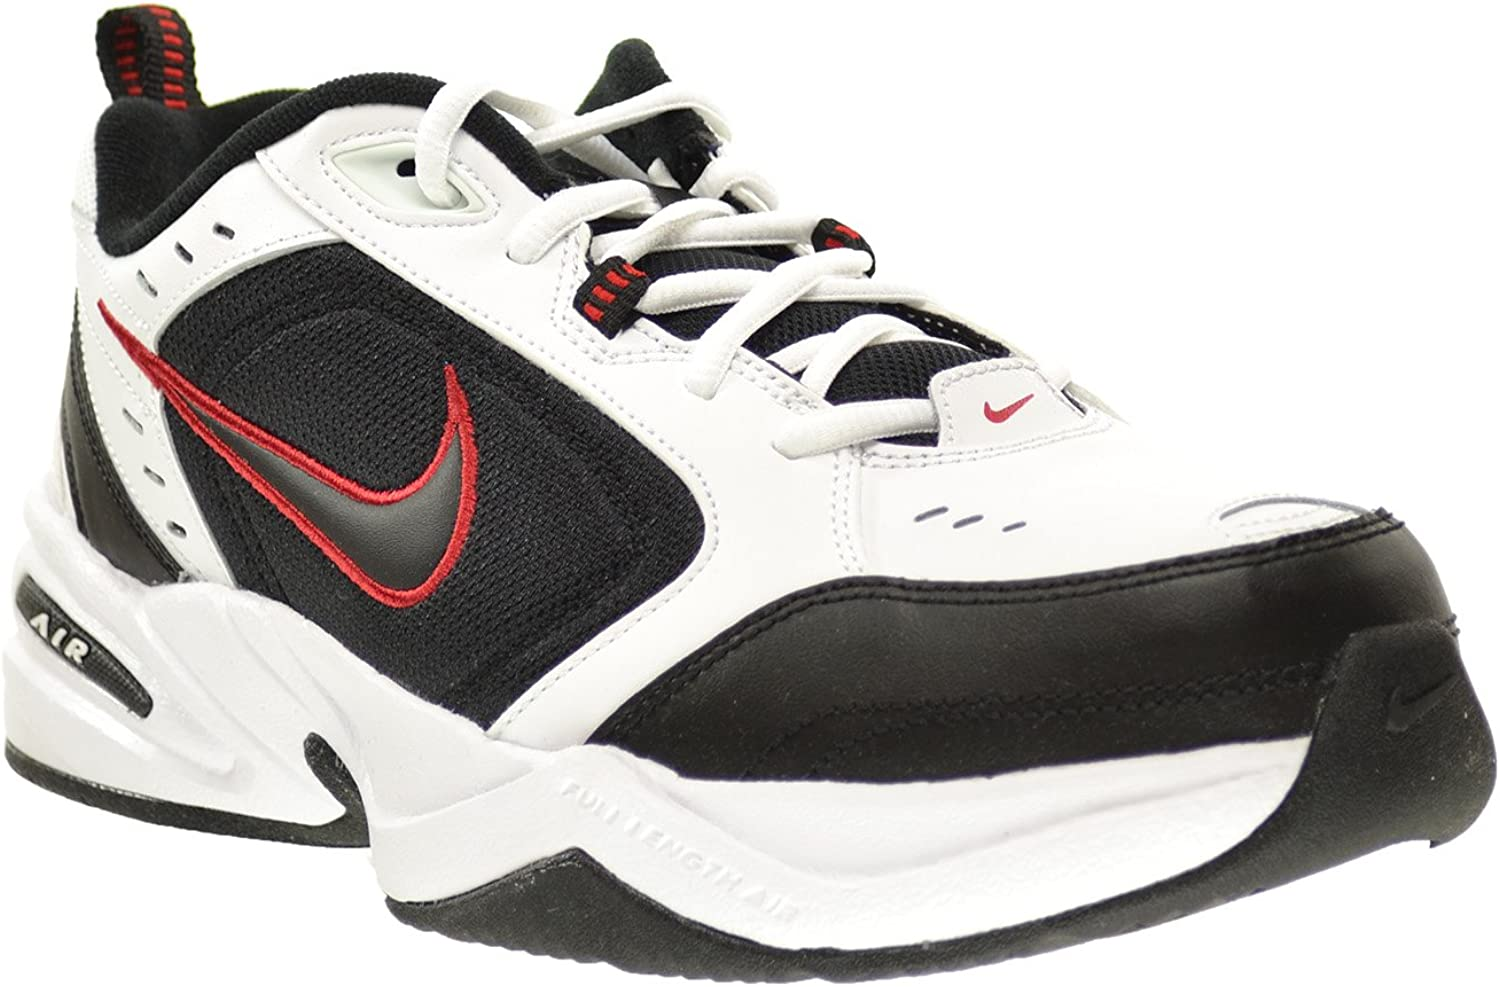 Nike Air Monarch Iv, Basses et Slip-on Homme Blanc Noir Varsity Rouge